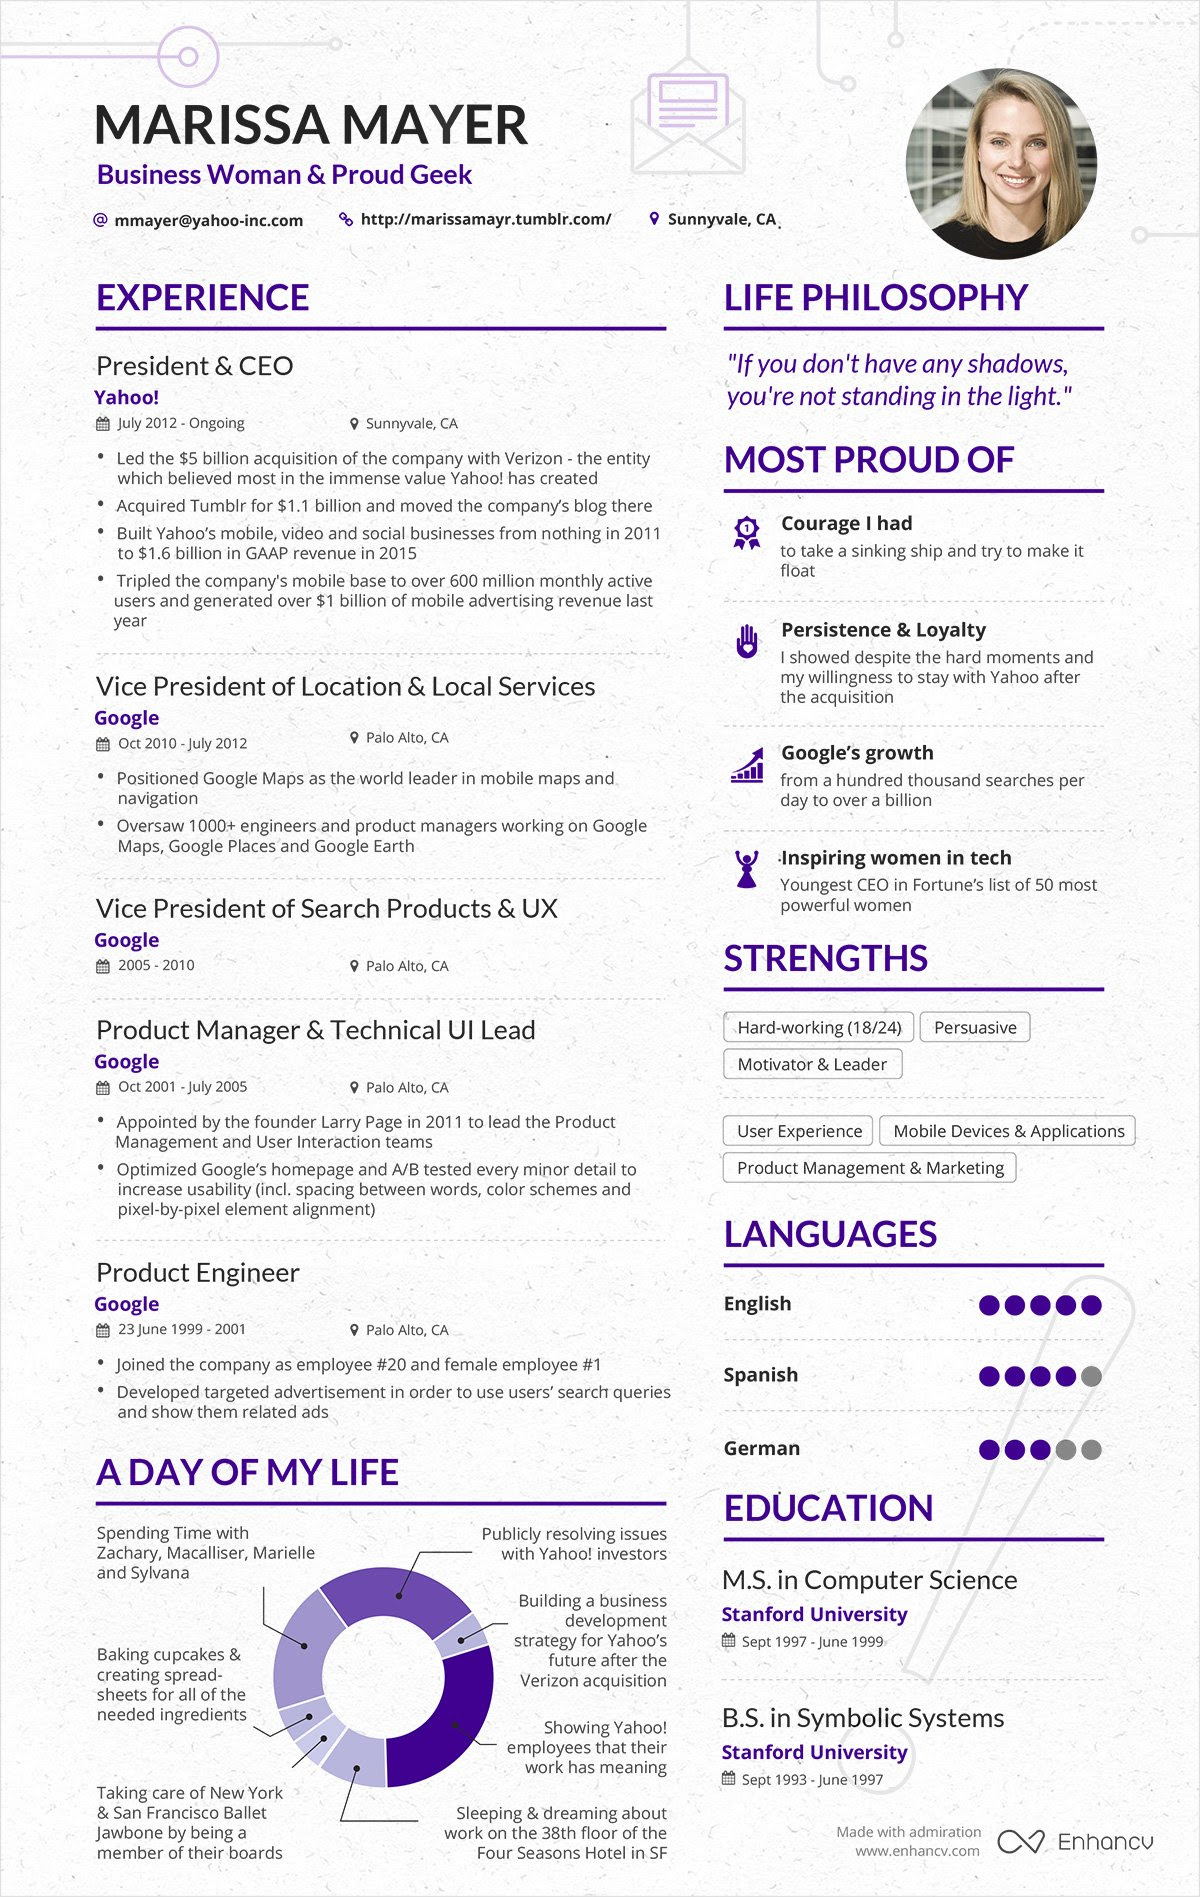 Most popular of 2016: #1. Make your content look as good as this CV from Yahoo's CEO